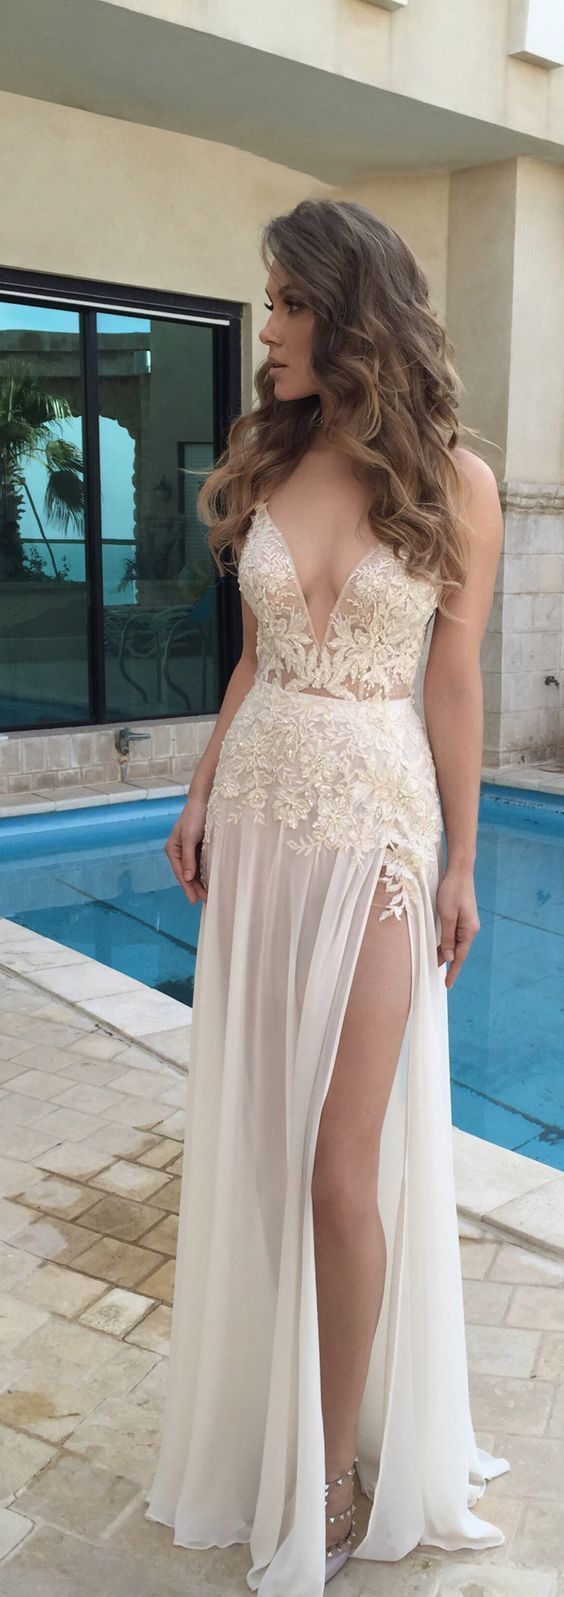 Sexy Prom Dress,V Neck Chiffon Prom Dresses,Long Prom Dress,Formal Evening Dress…